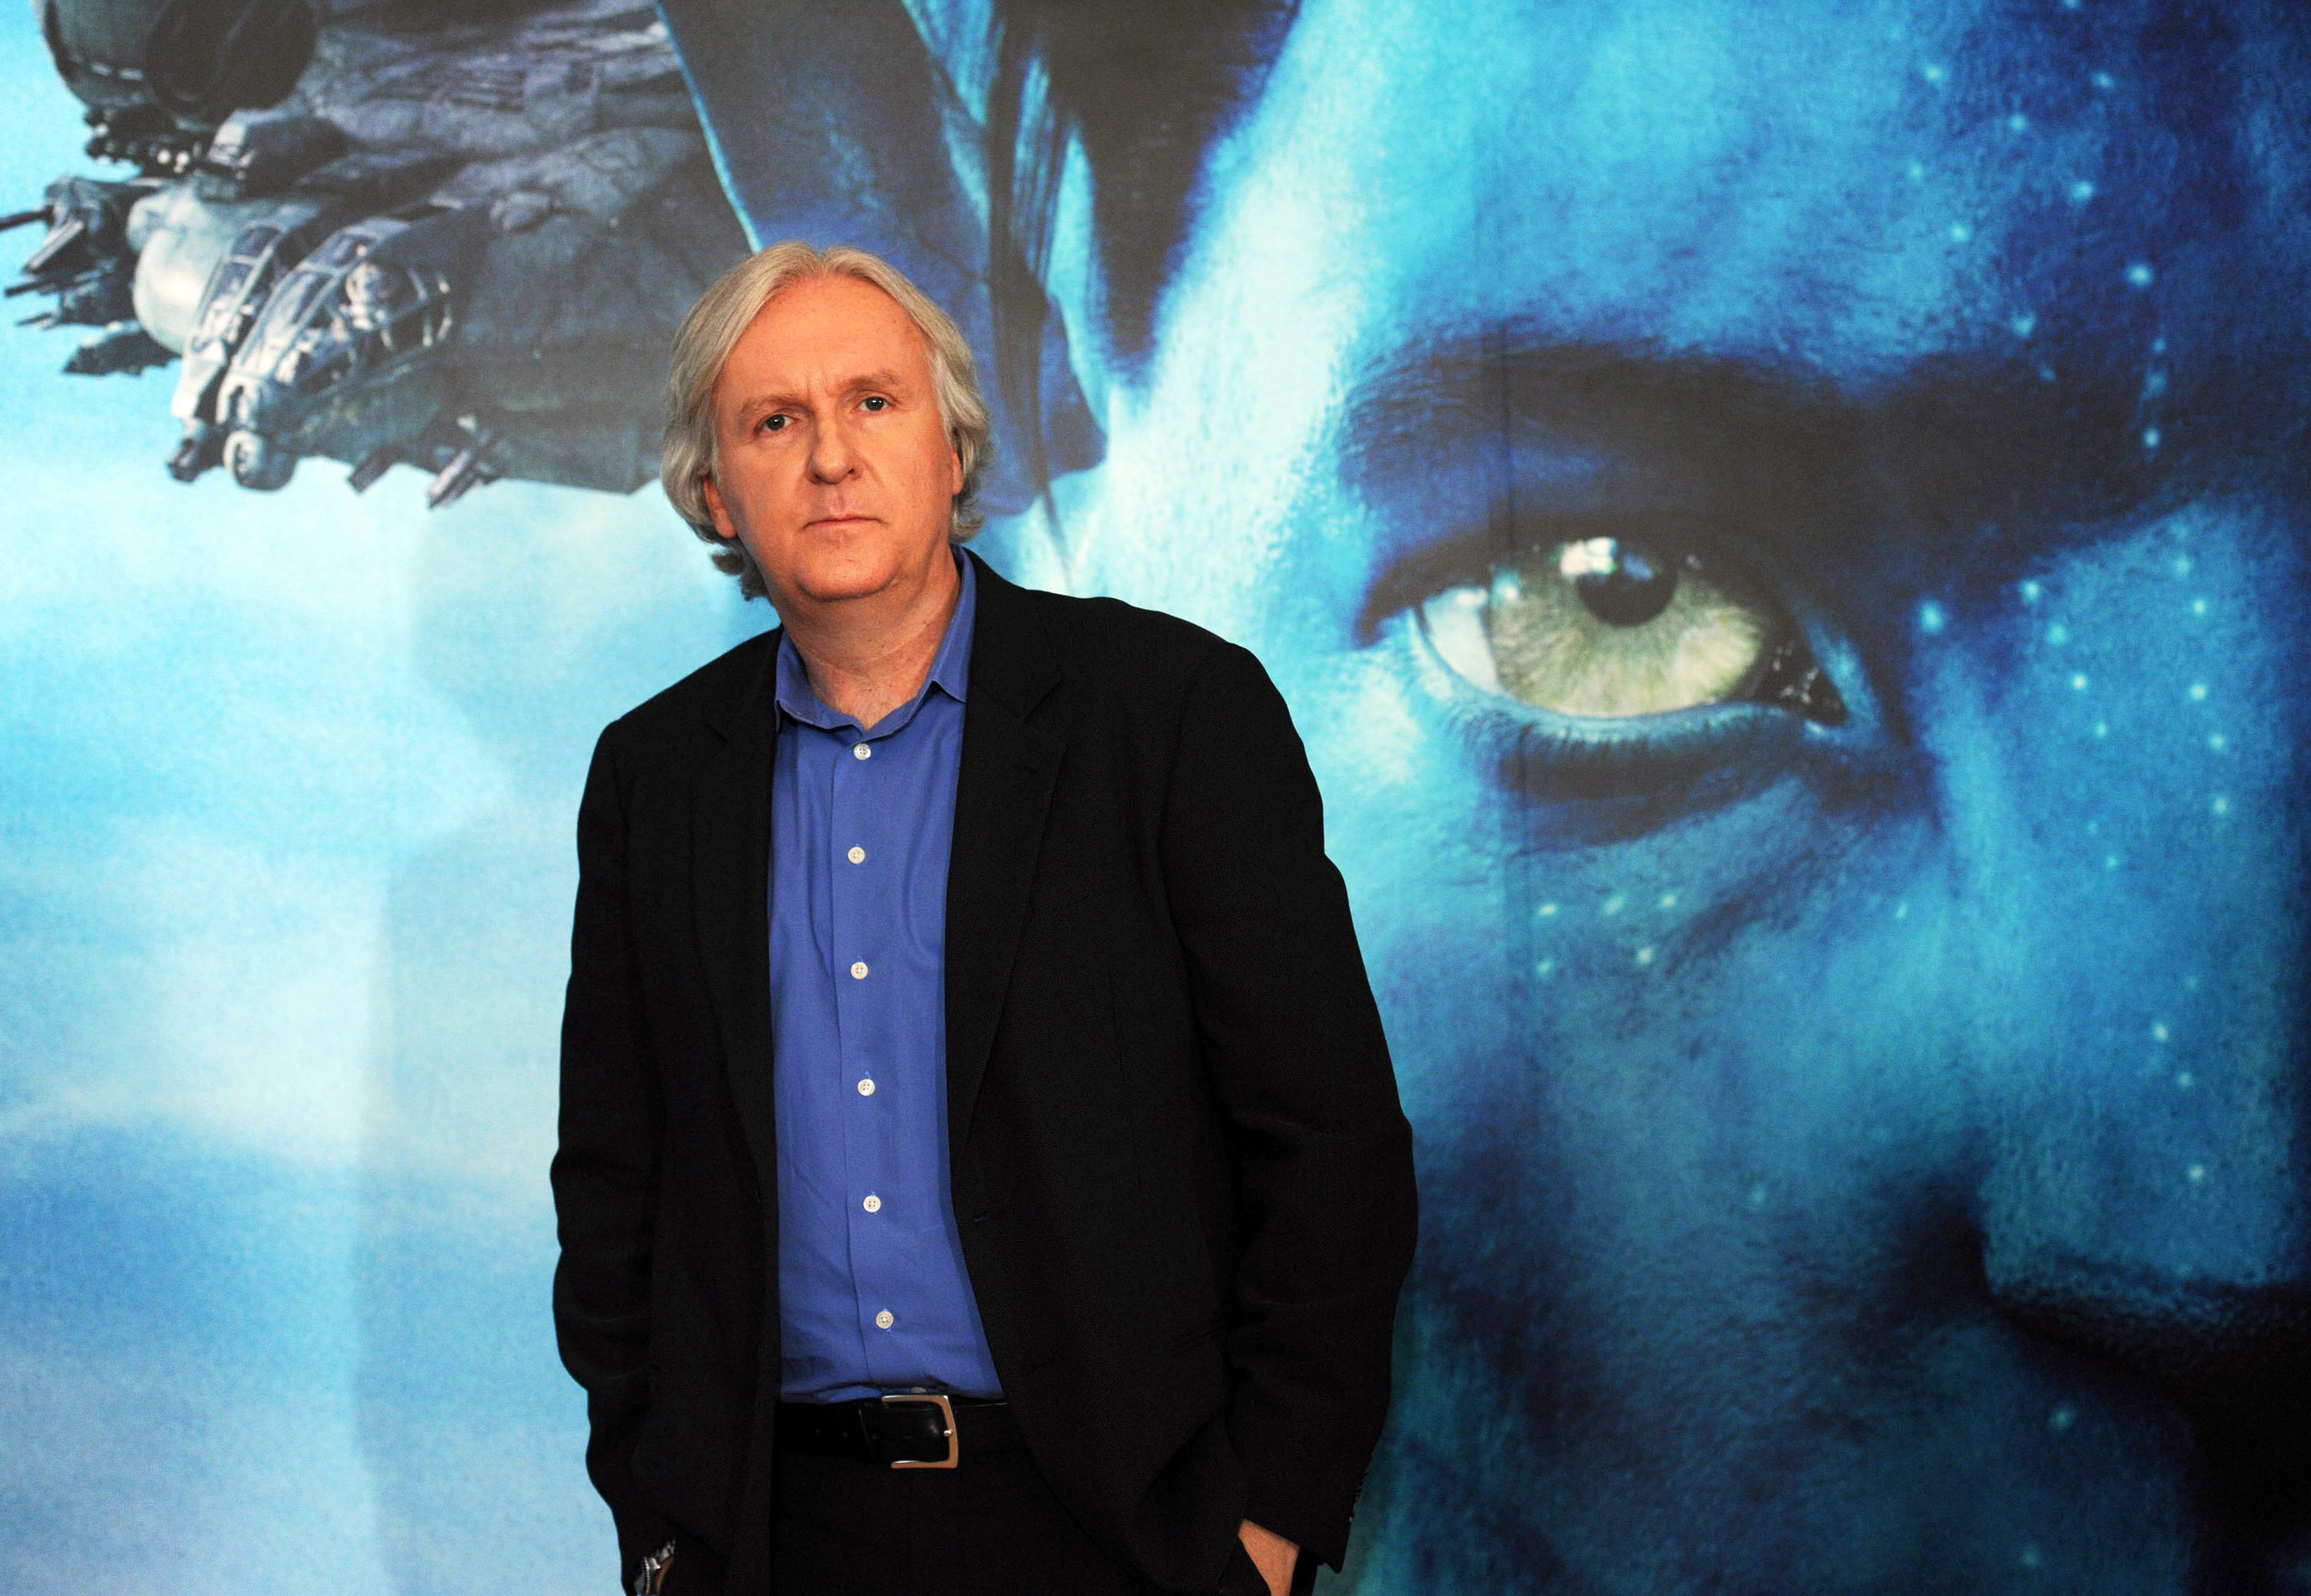 james cameron avatar 2 3 4